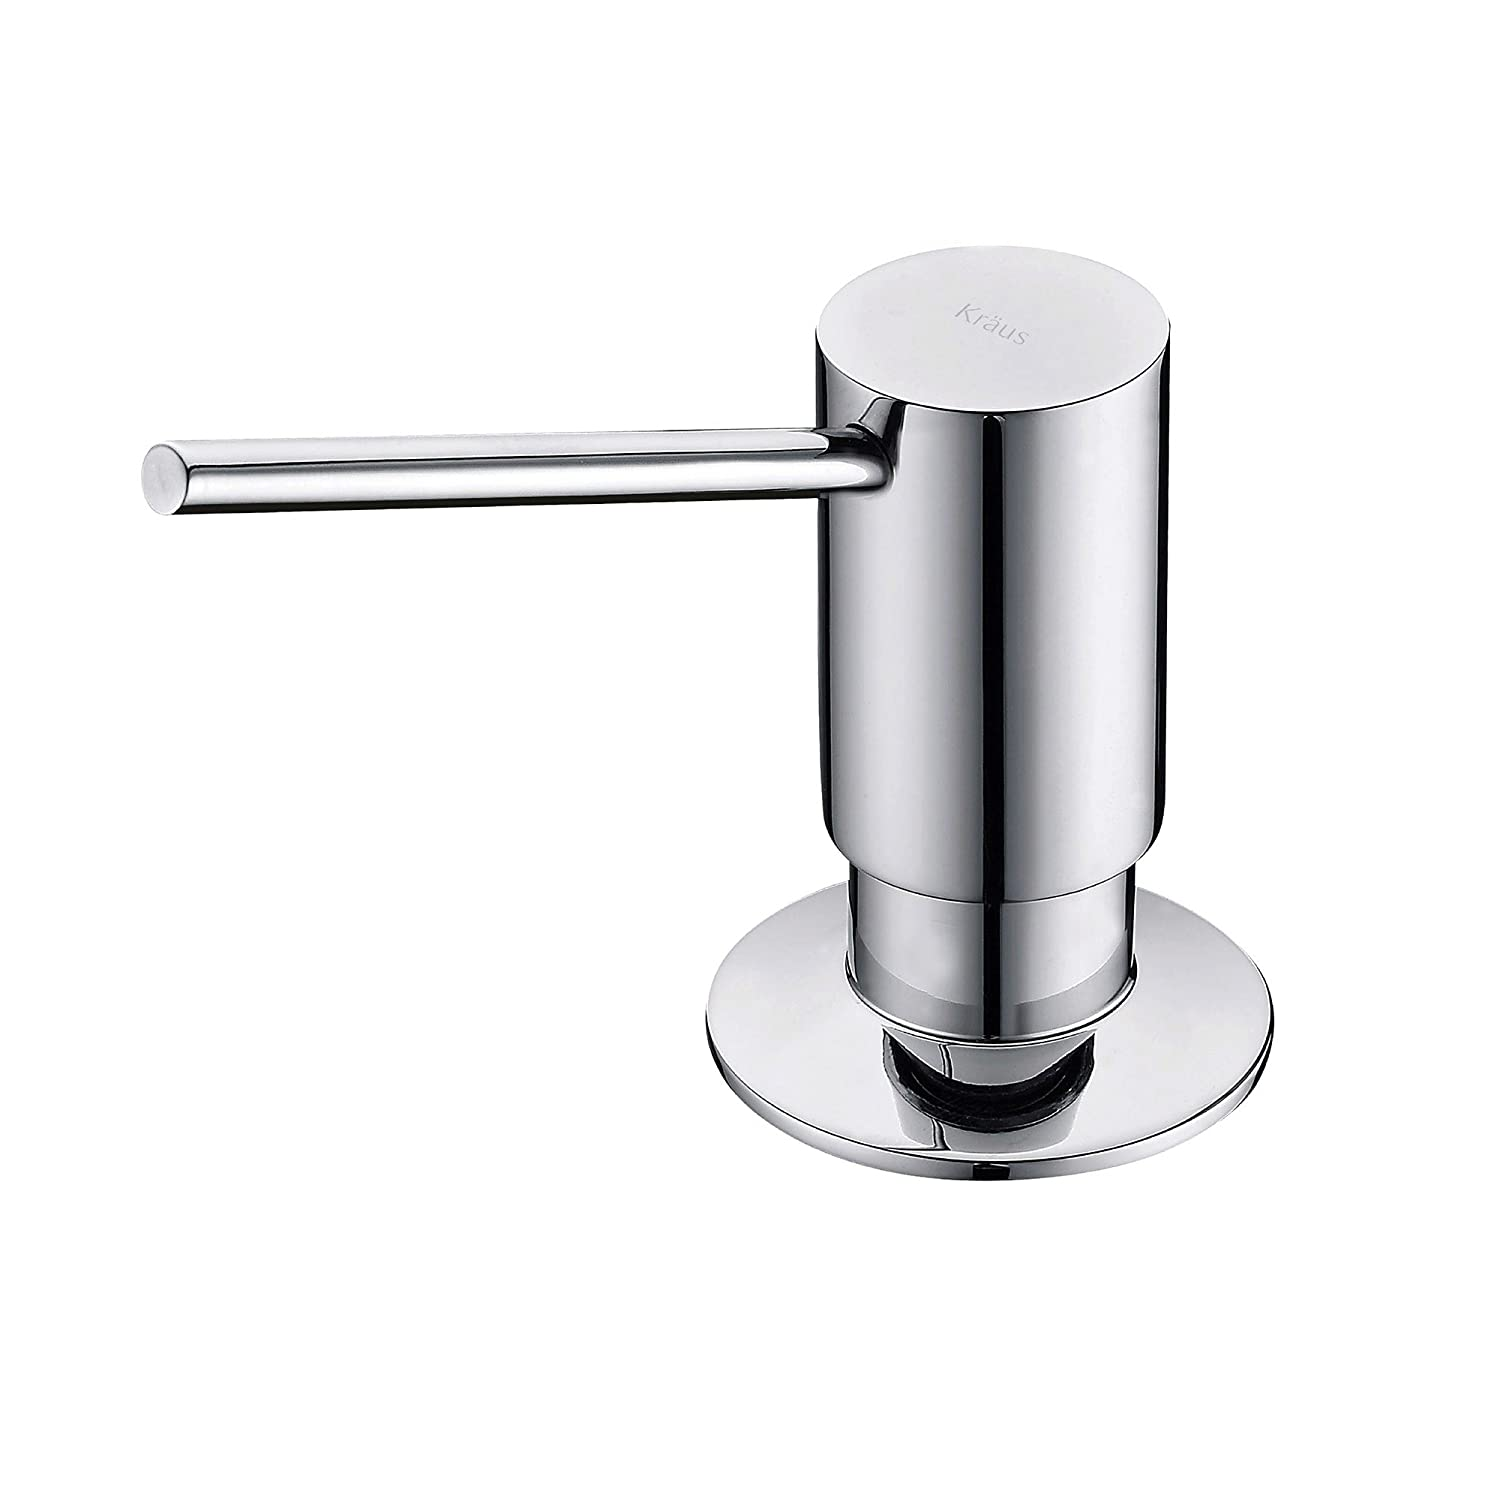 Kraus Mateo modern kitchen faucet with coil – pros and cons